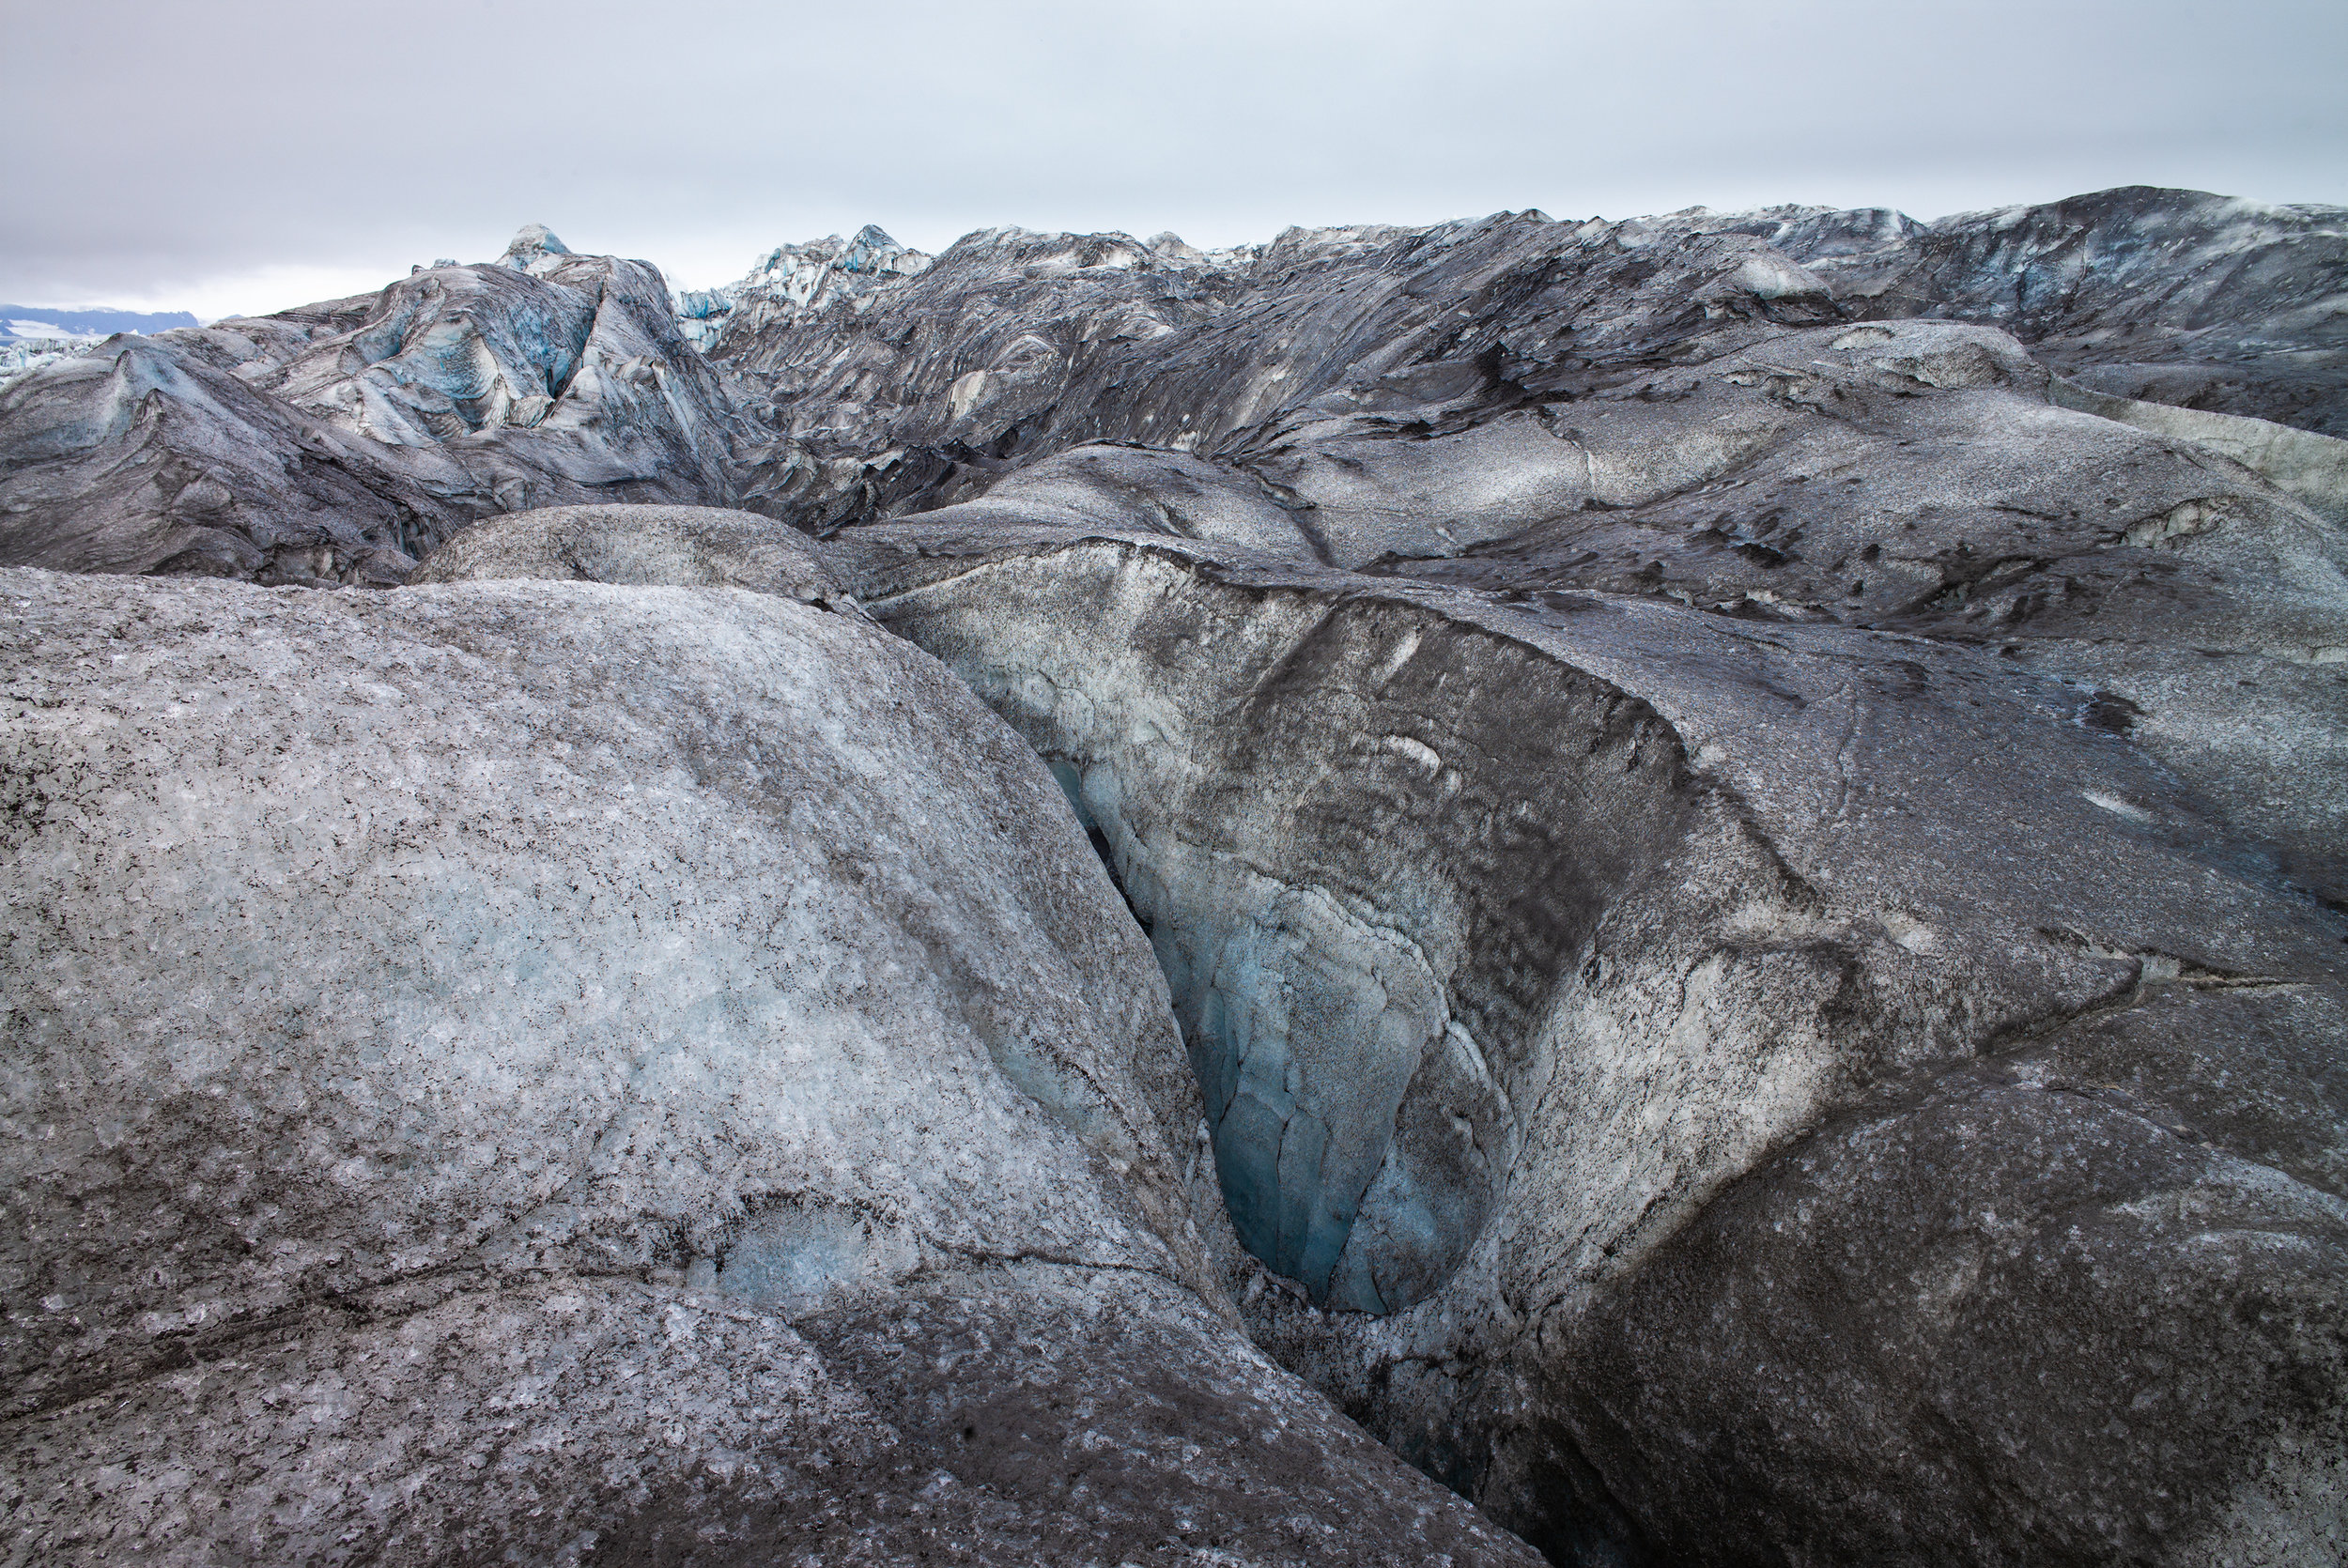 Undulating ice forms into ridges, valleys, and deep wells leading into the glacier.